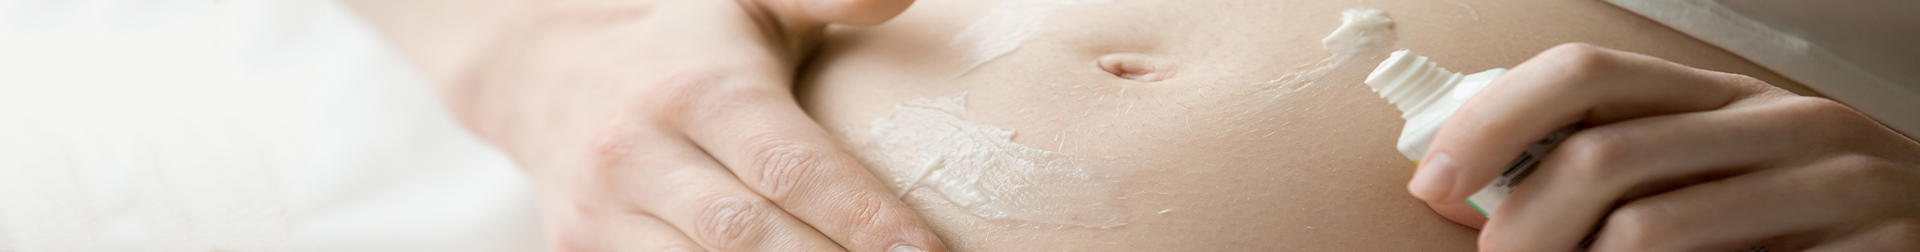 Body - Skin Care Products - Anti-Stretch Mark Products